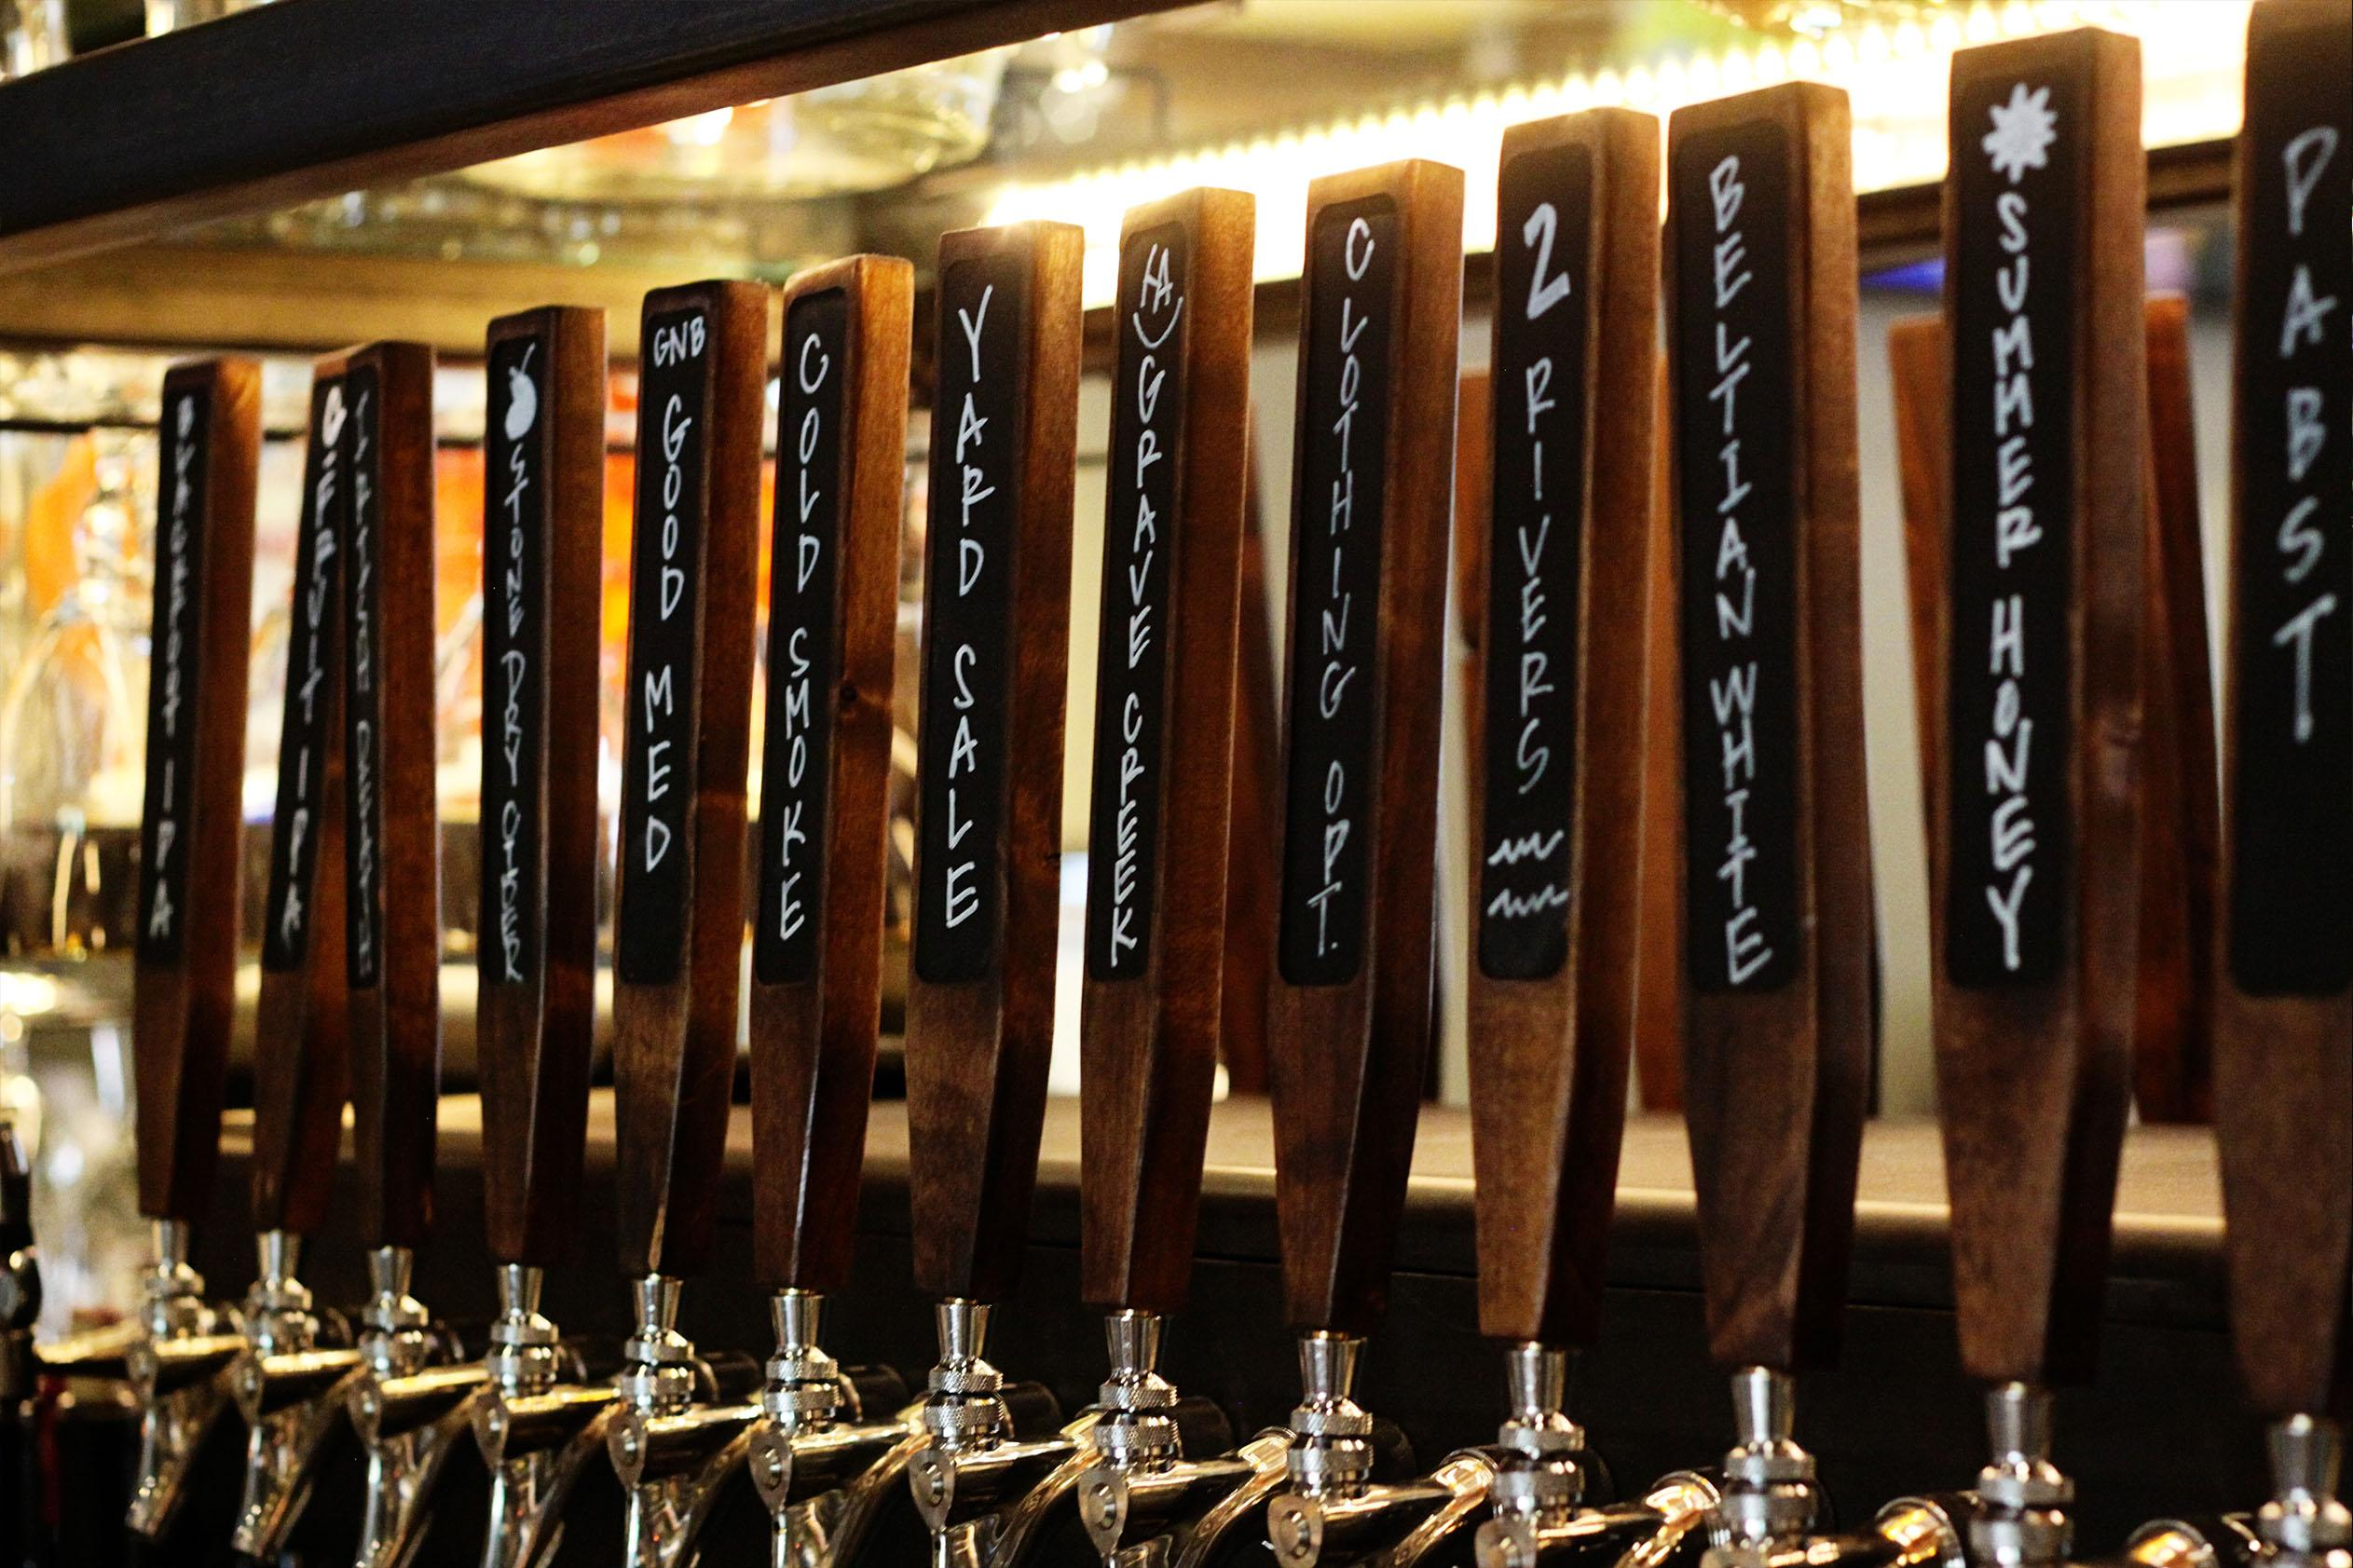 A wide variety of beers on tap